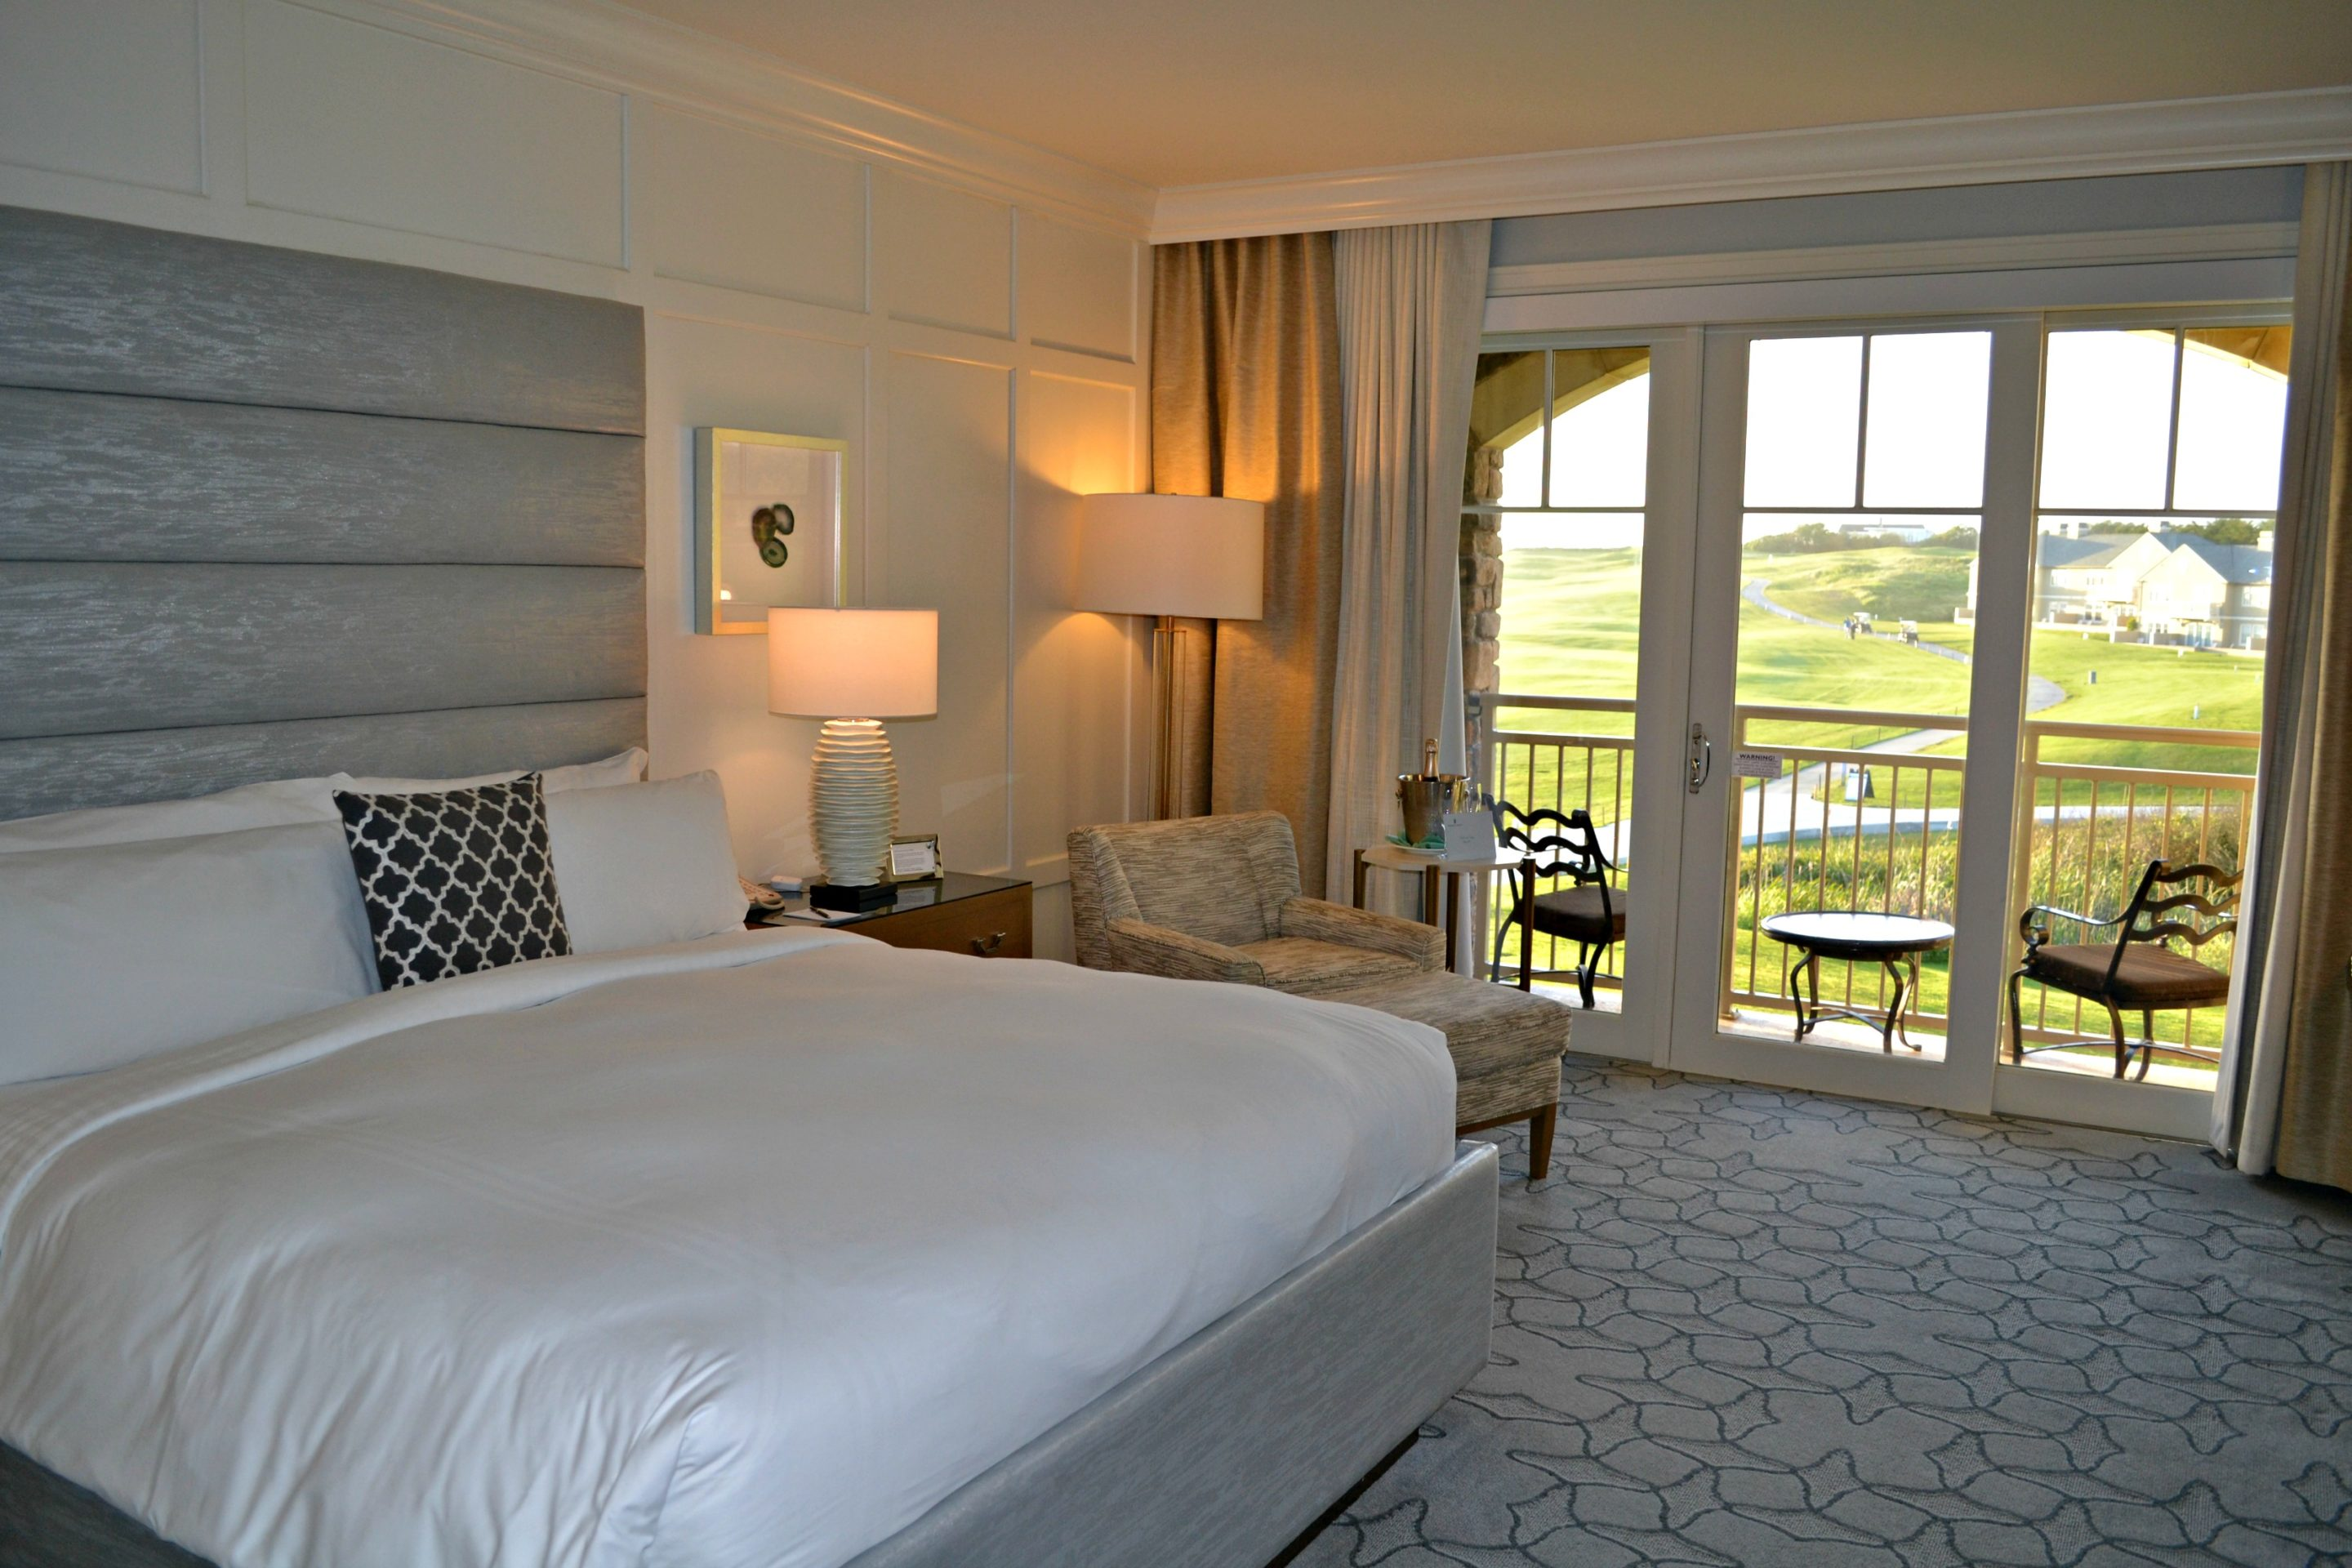 Newly renovated rooms take in the views